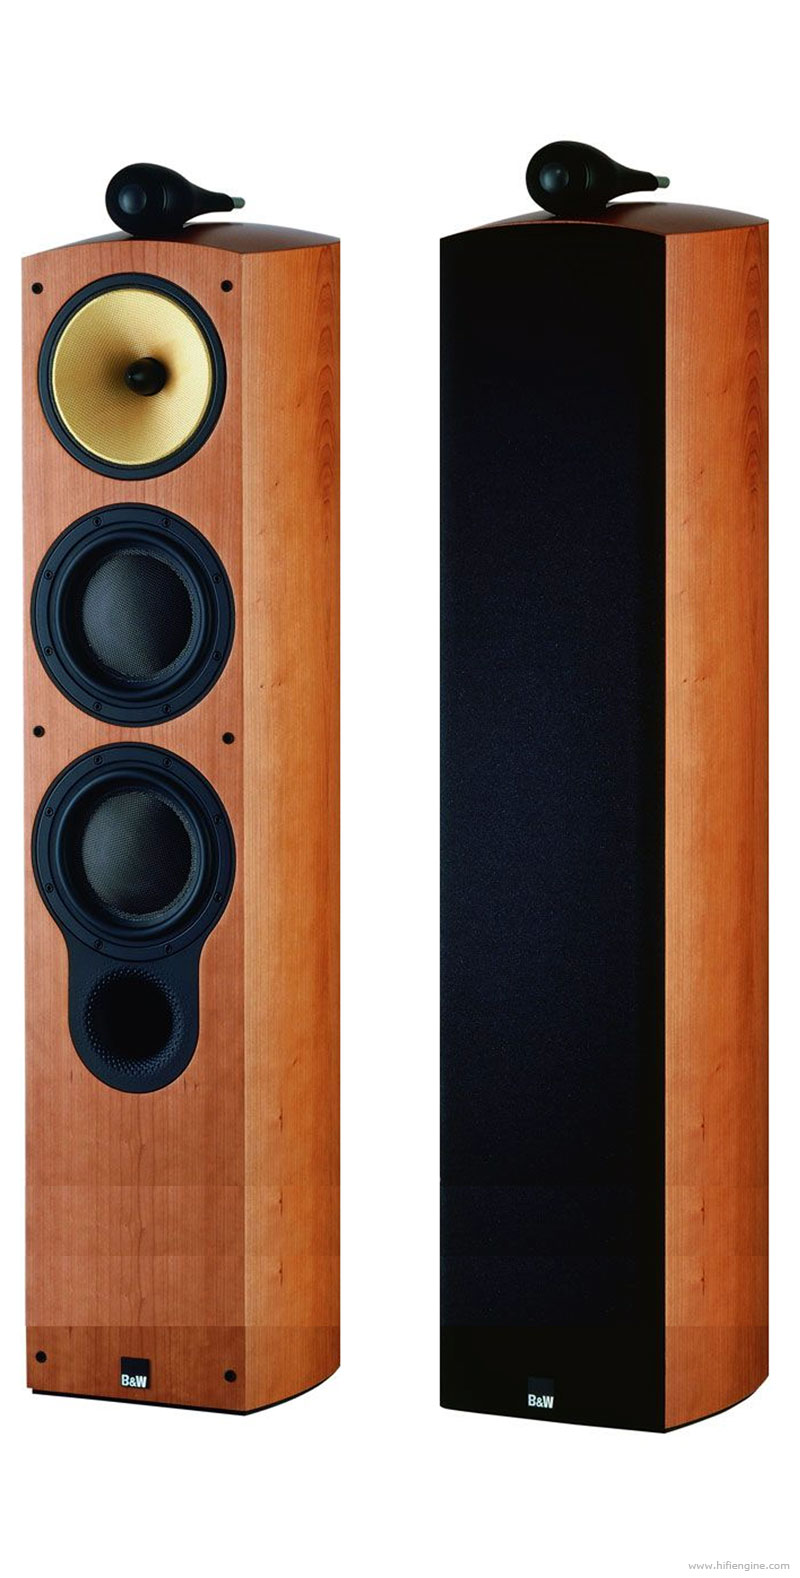 bowers and wilkins 804 manual loudspeaker system. Black Bedroom Furniture Sets. Home Design Ideas